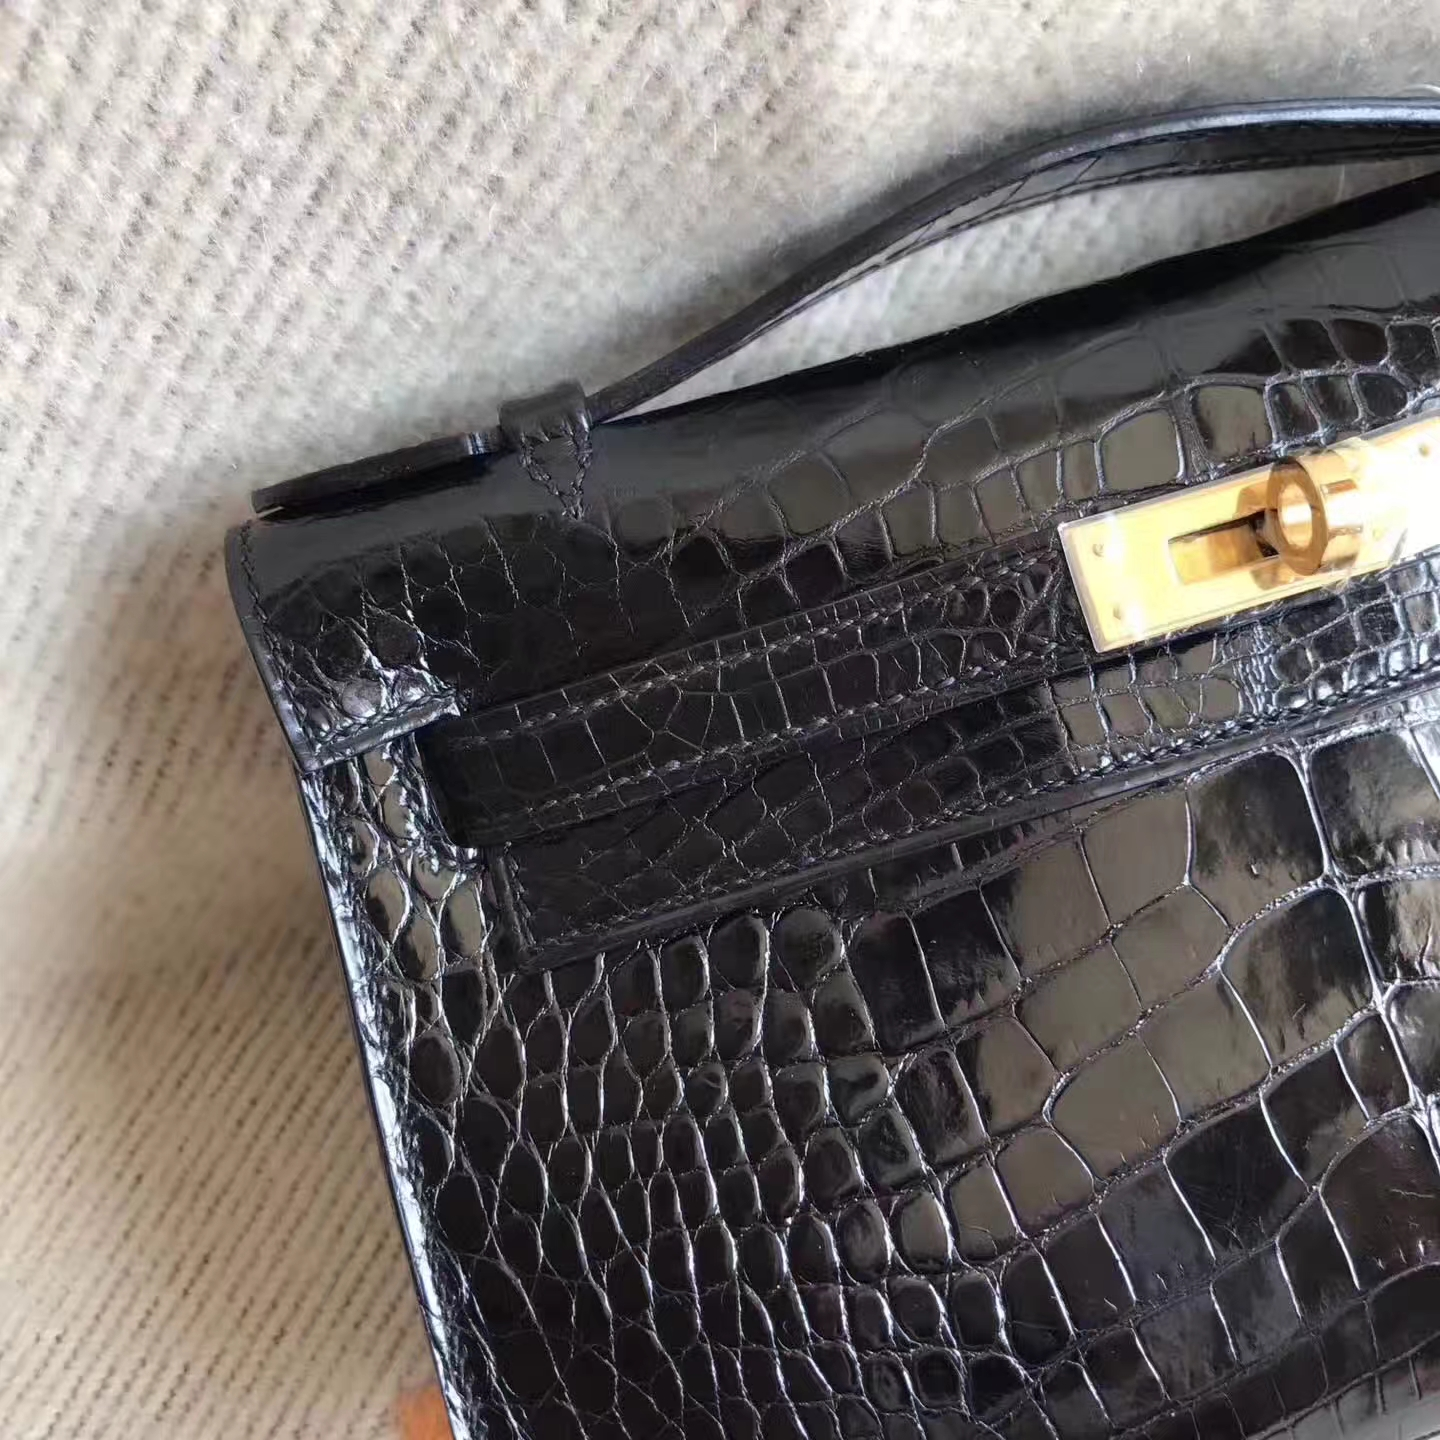 Wholesale Hermes Minikelly Clutch Bag in CK89 Black Shiny Alligator Crocodile